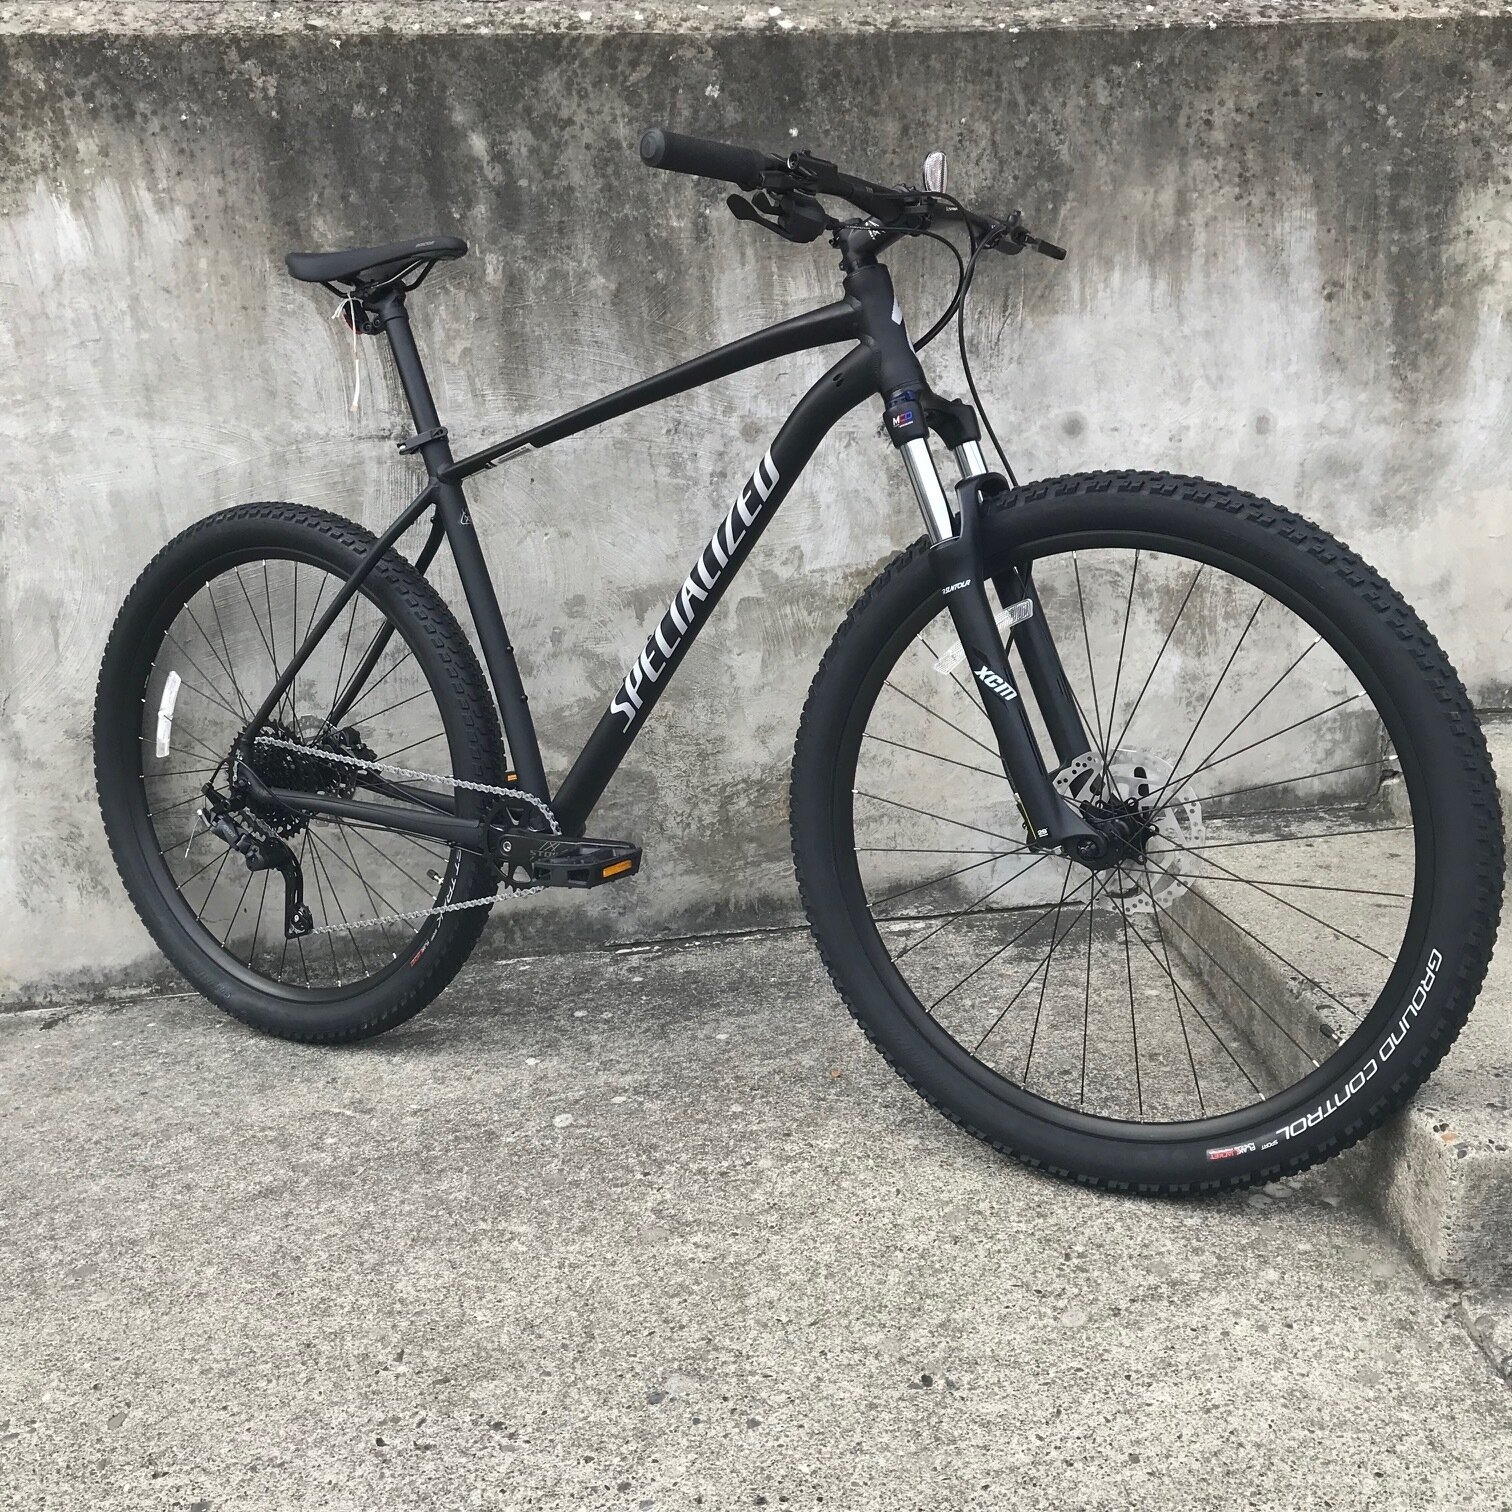 Specialized Rockhopper Comp 29 1X - $730Sizes available: Medium, Large, Extra LargeWe are happy to order you any size or model you need.